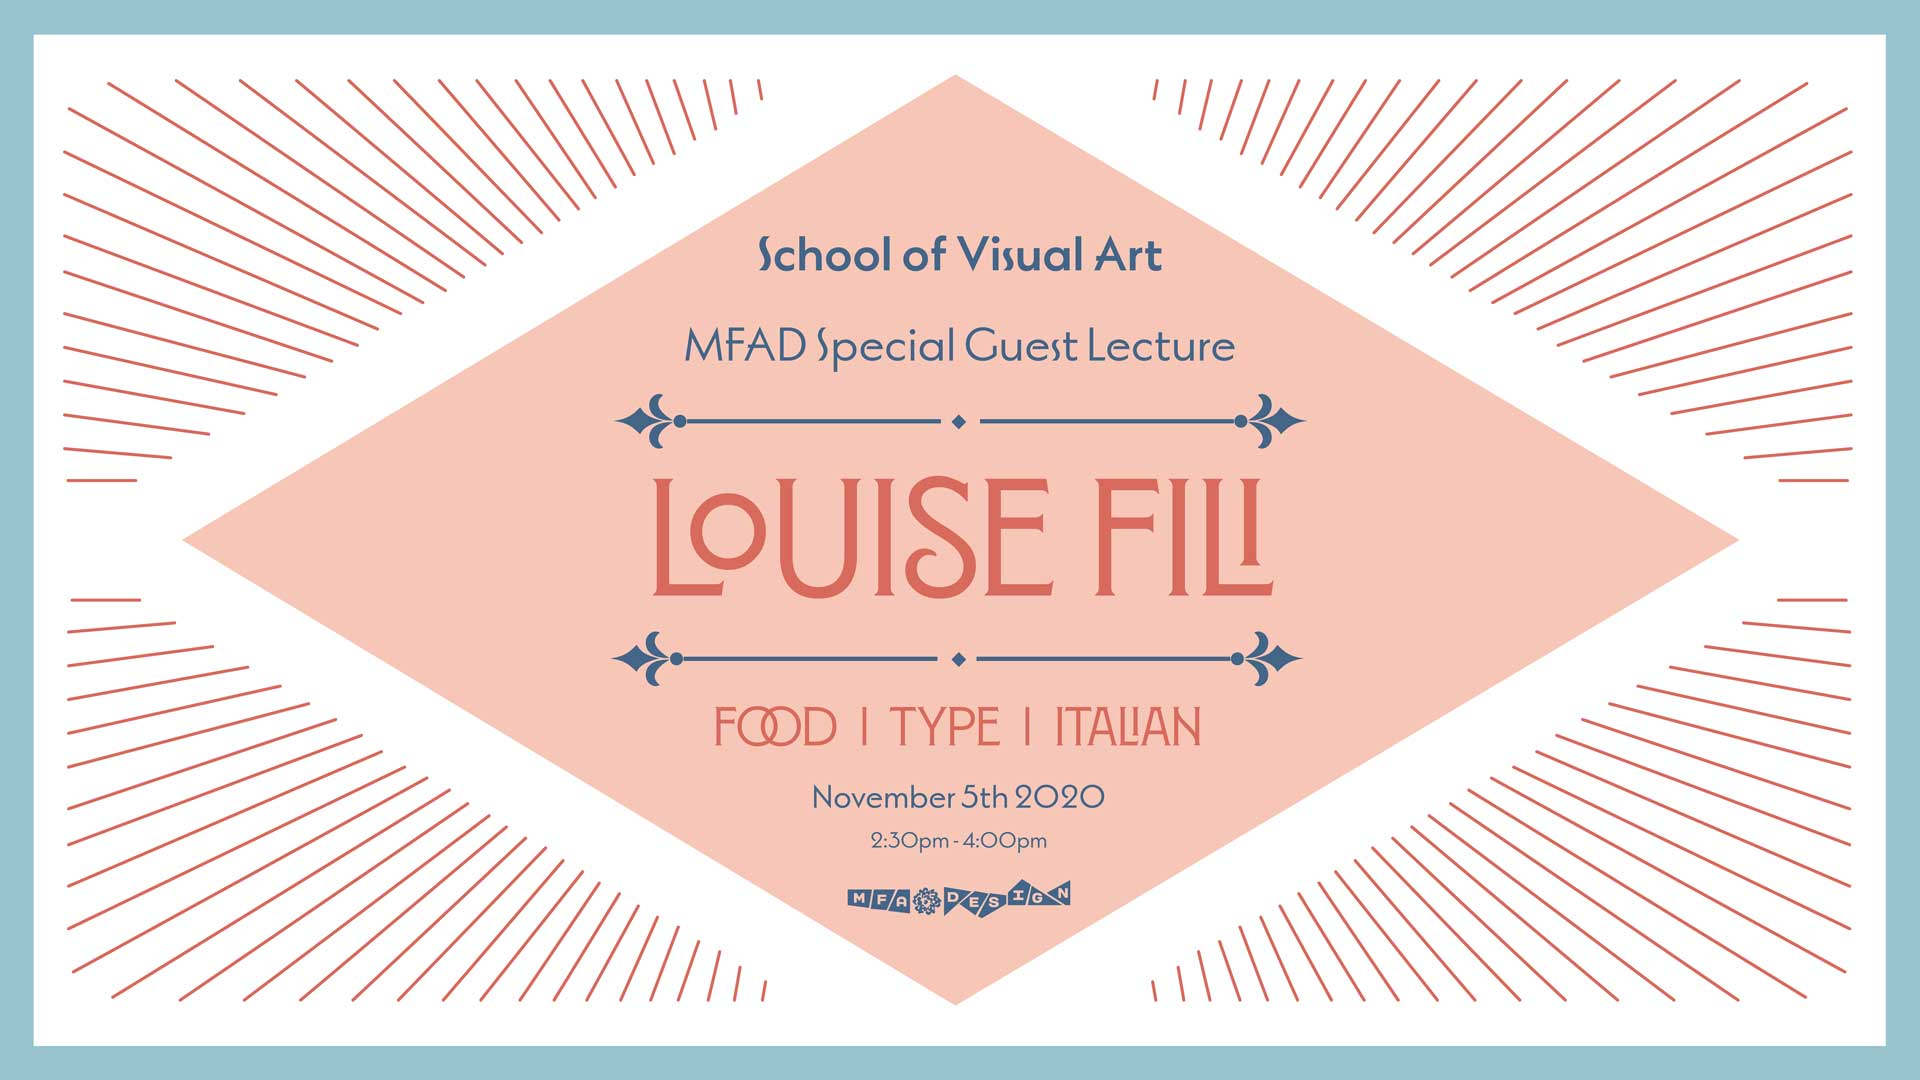 poster for Louise fili lecture at SVA